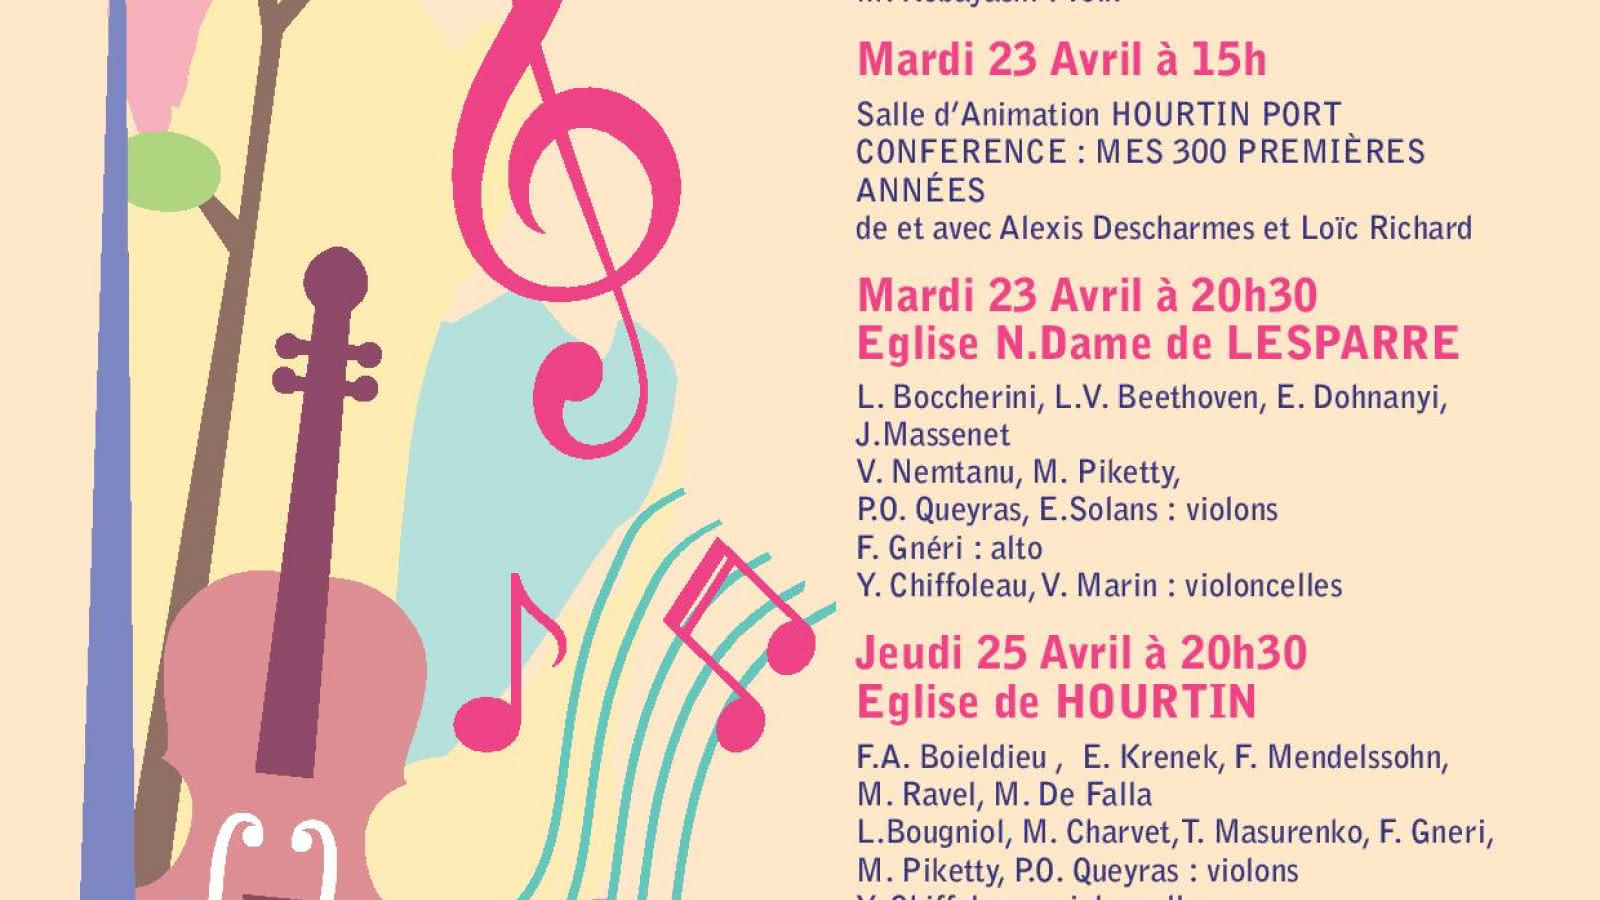 Affiche---Academie-musicale-Hourtin-concerts